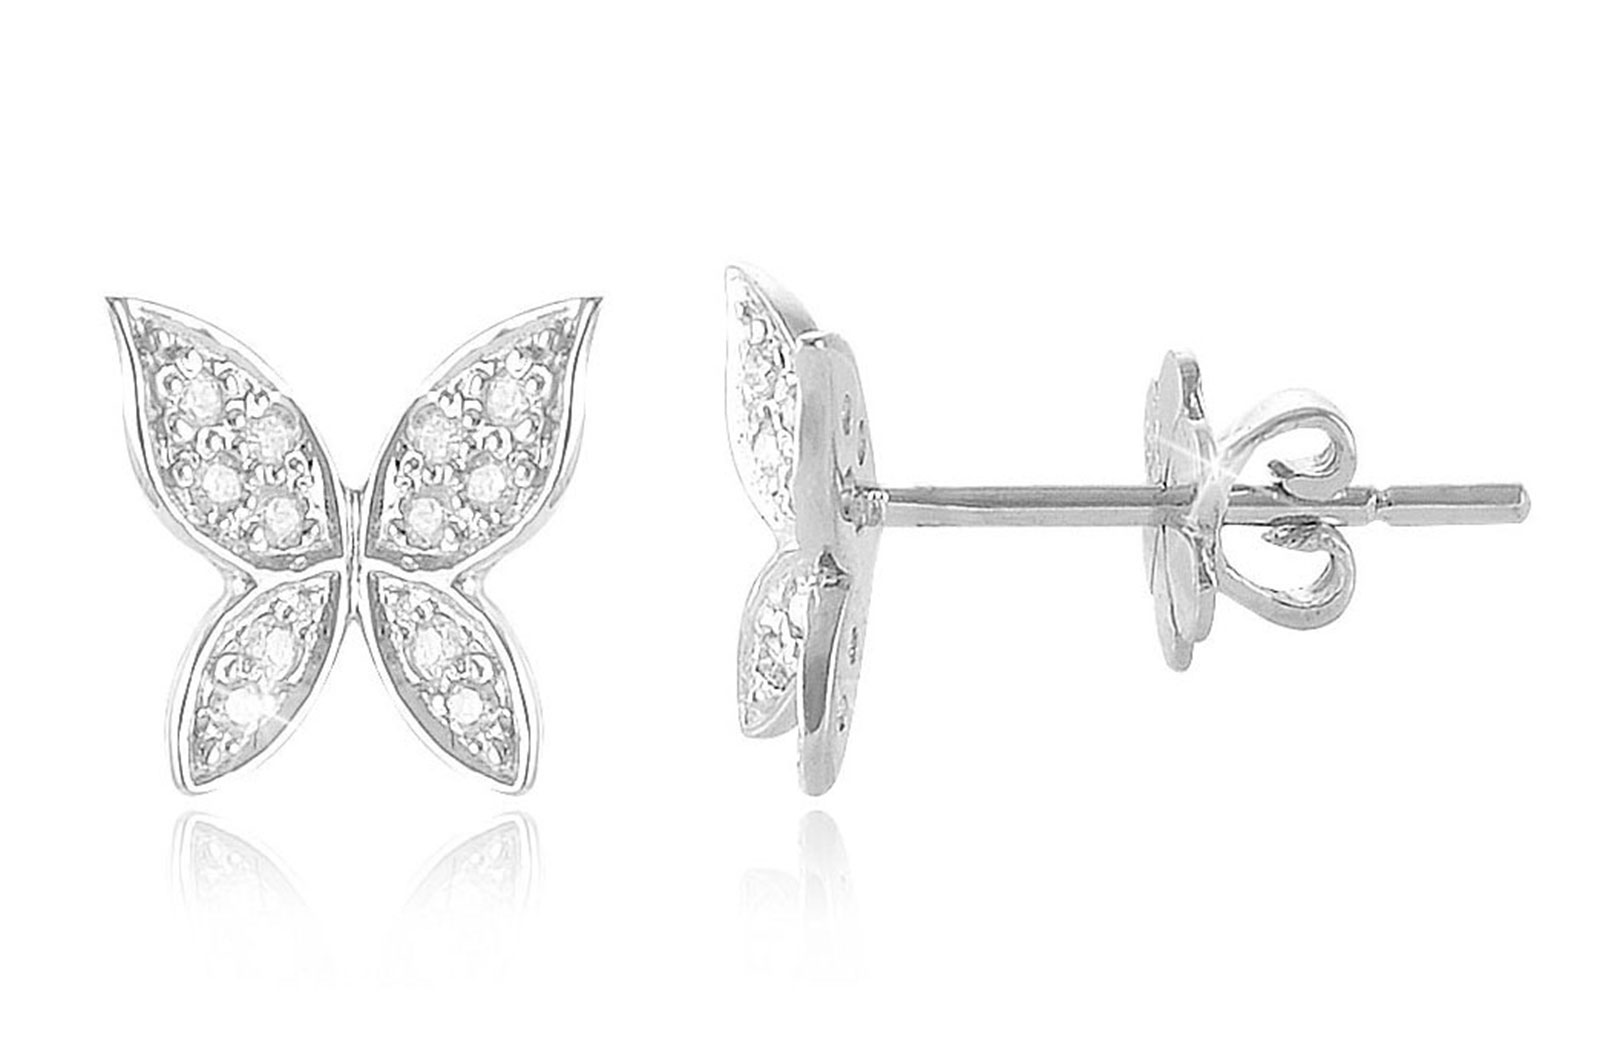 Vera Perla 0.12Cts Diamonds, 18K White Gold Butterfly Earrings